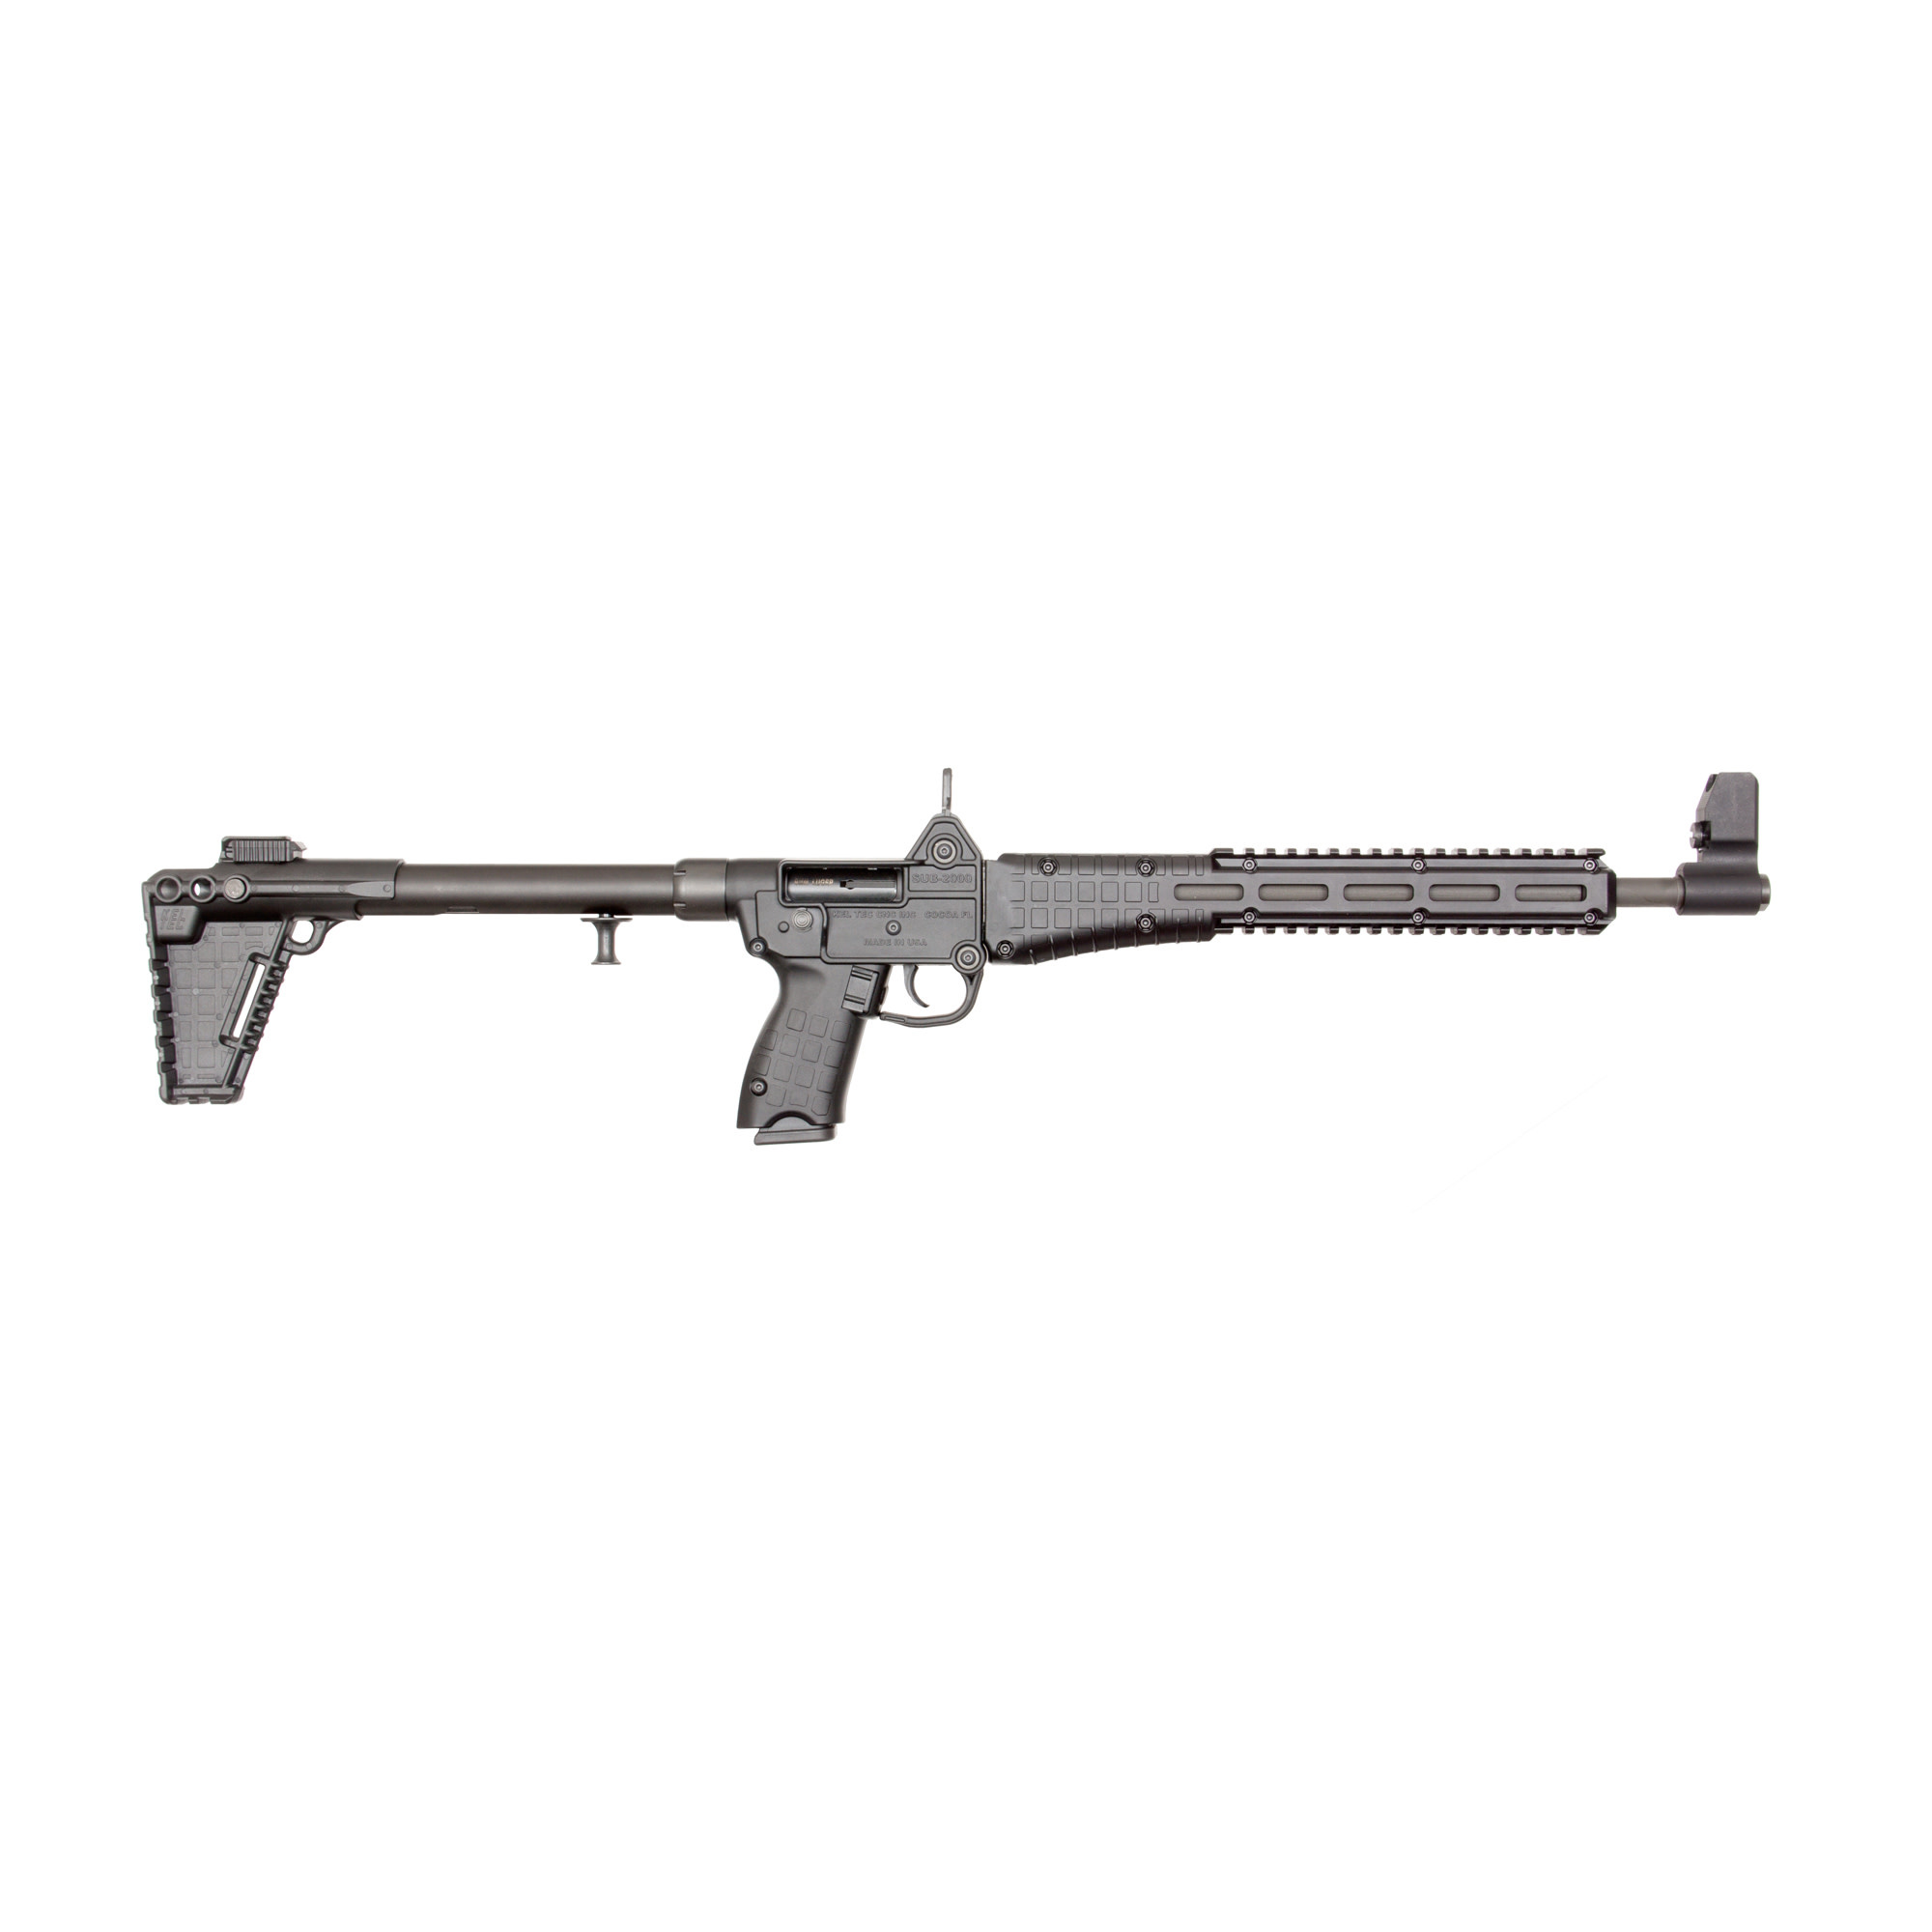 Kel-Tec KEL-TEC SUB-2000 9MM 17RD FOR GLK17 BLK